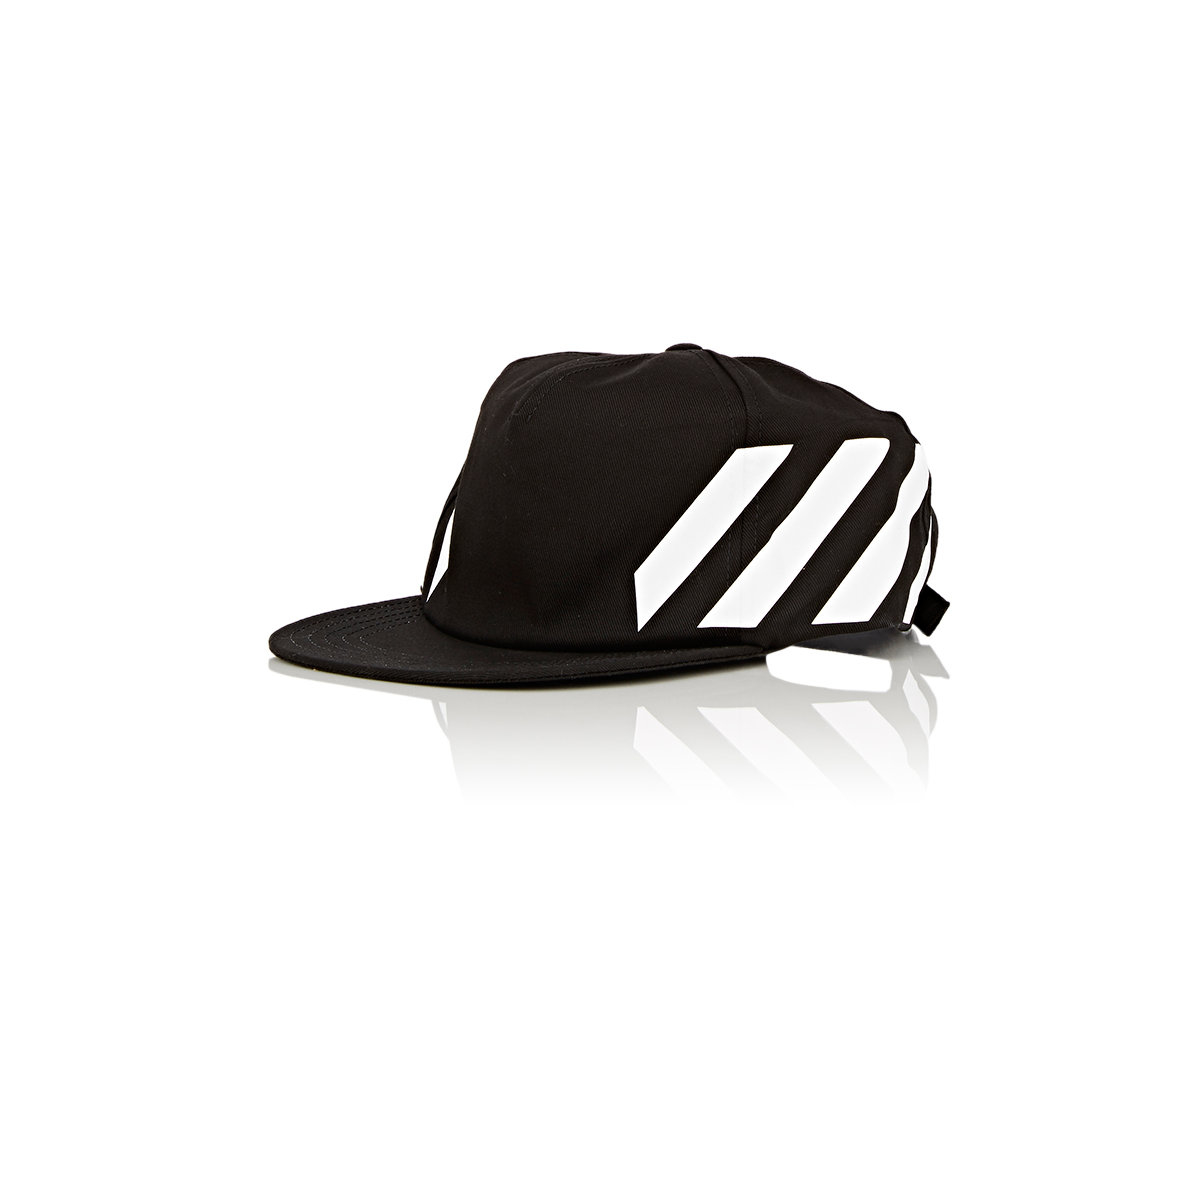 26d90fbbad3 Lyst - Off-White c o Virgil Abloh Twill Baseball Cap in Black for Men